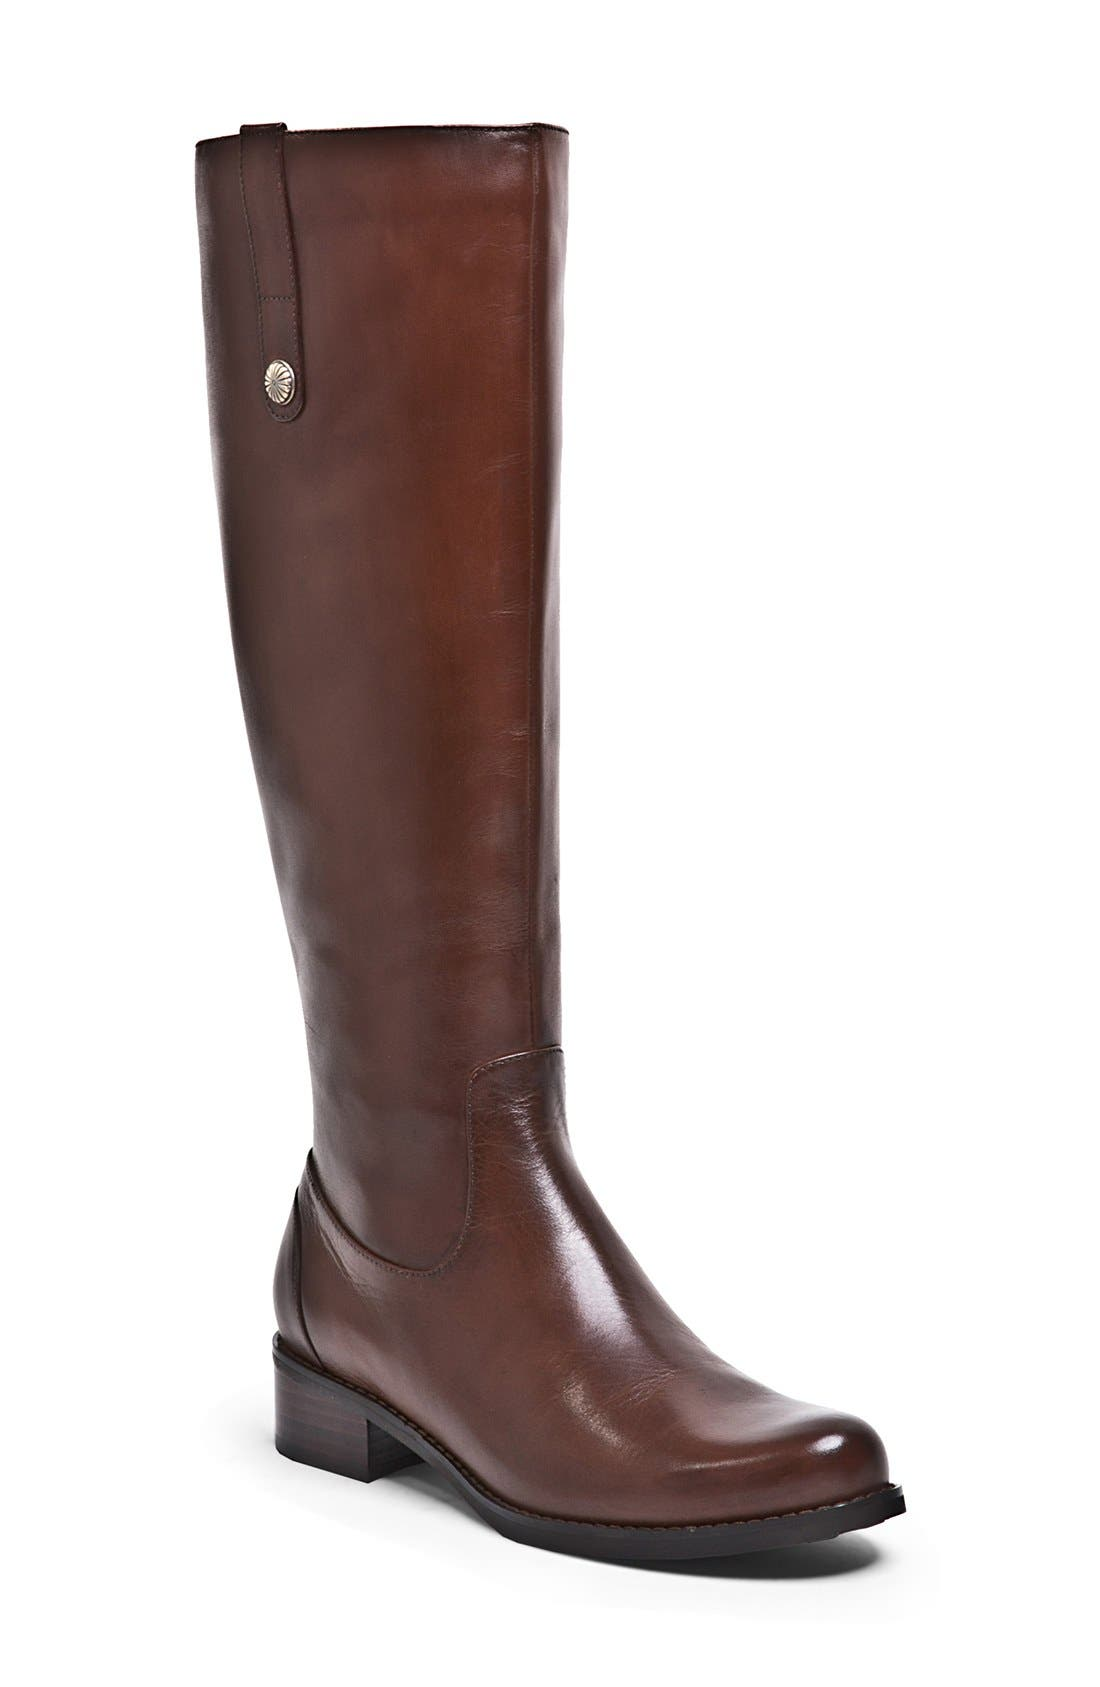 BLONDO 'Victorina' Waterproof Leather Riding Boot